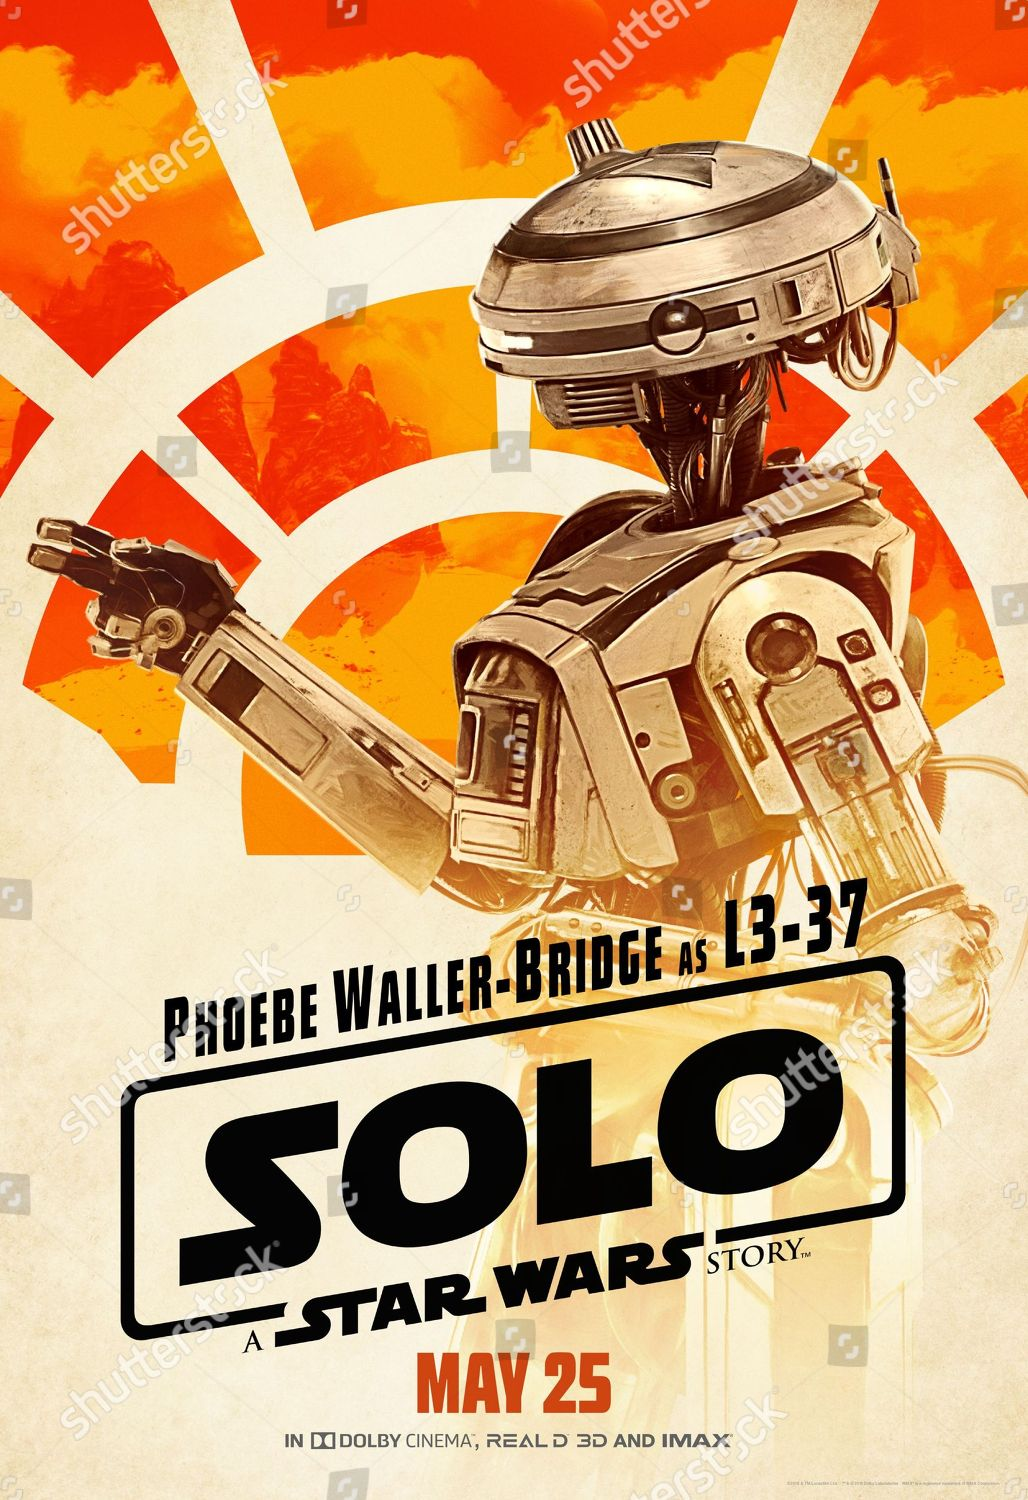 Solo Star Wars Story 2018 Poster Art Editorial Stock Photo Stock Image Shutterstock